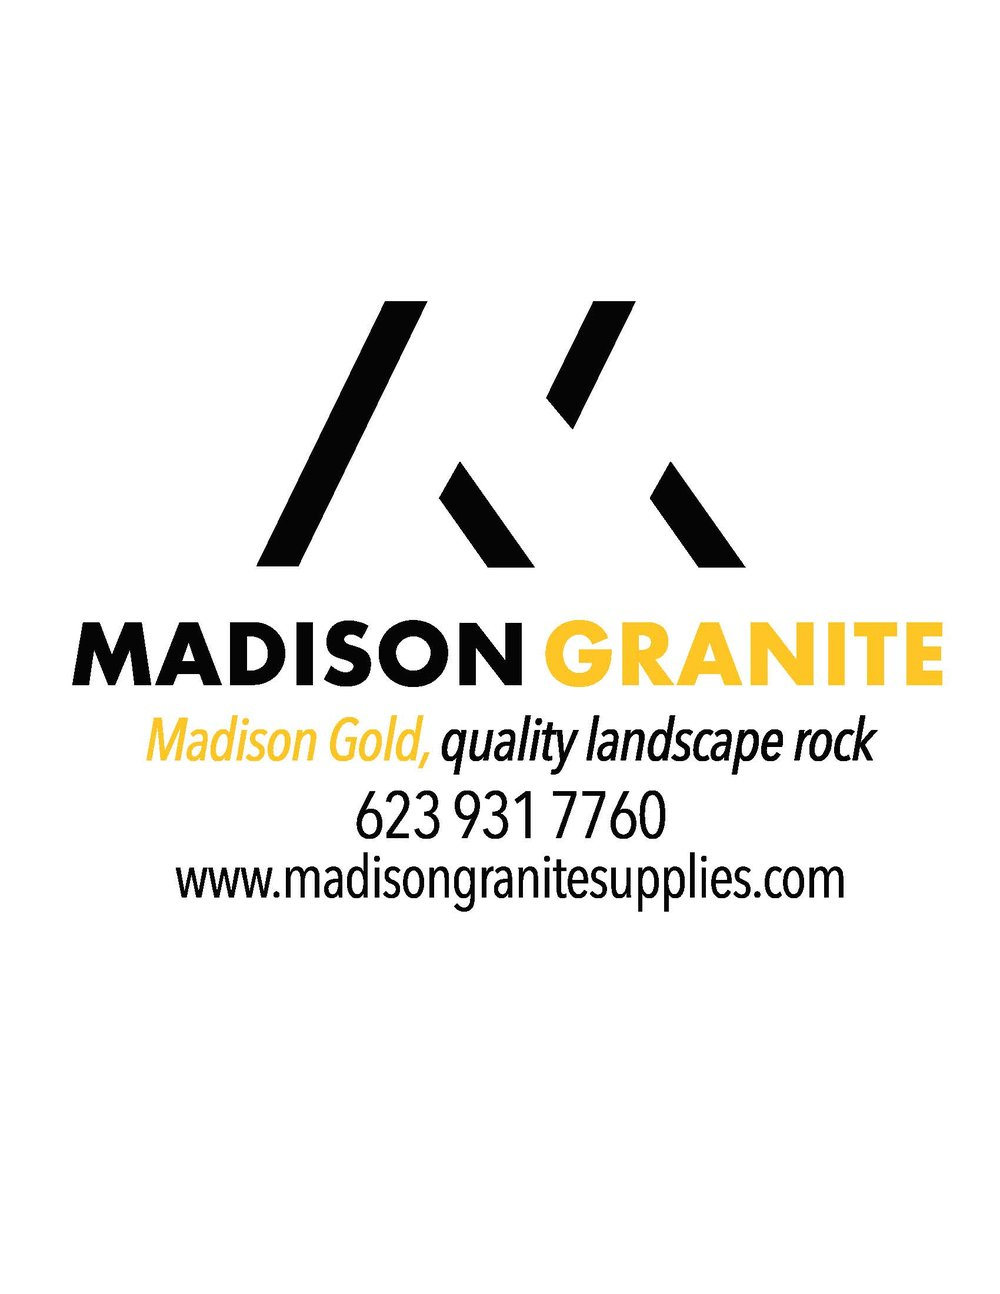 Madison Granite Supplies, Inc.